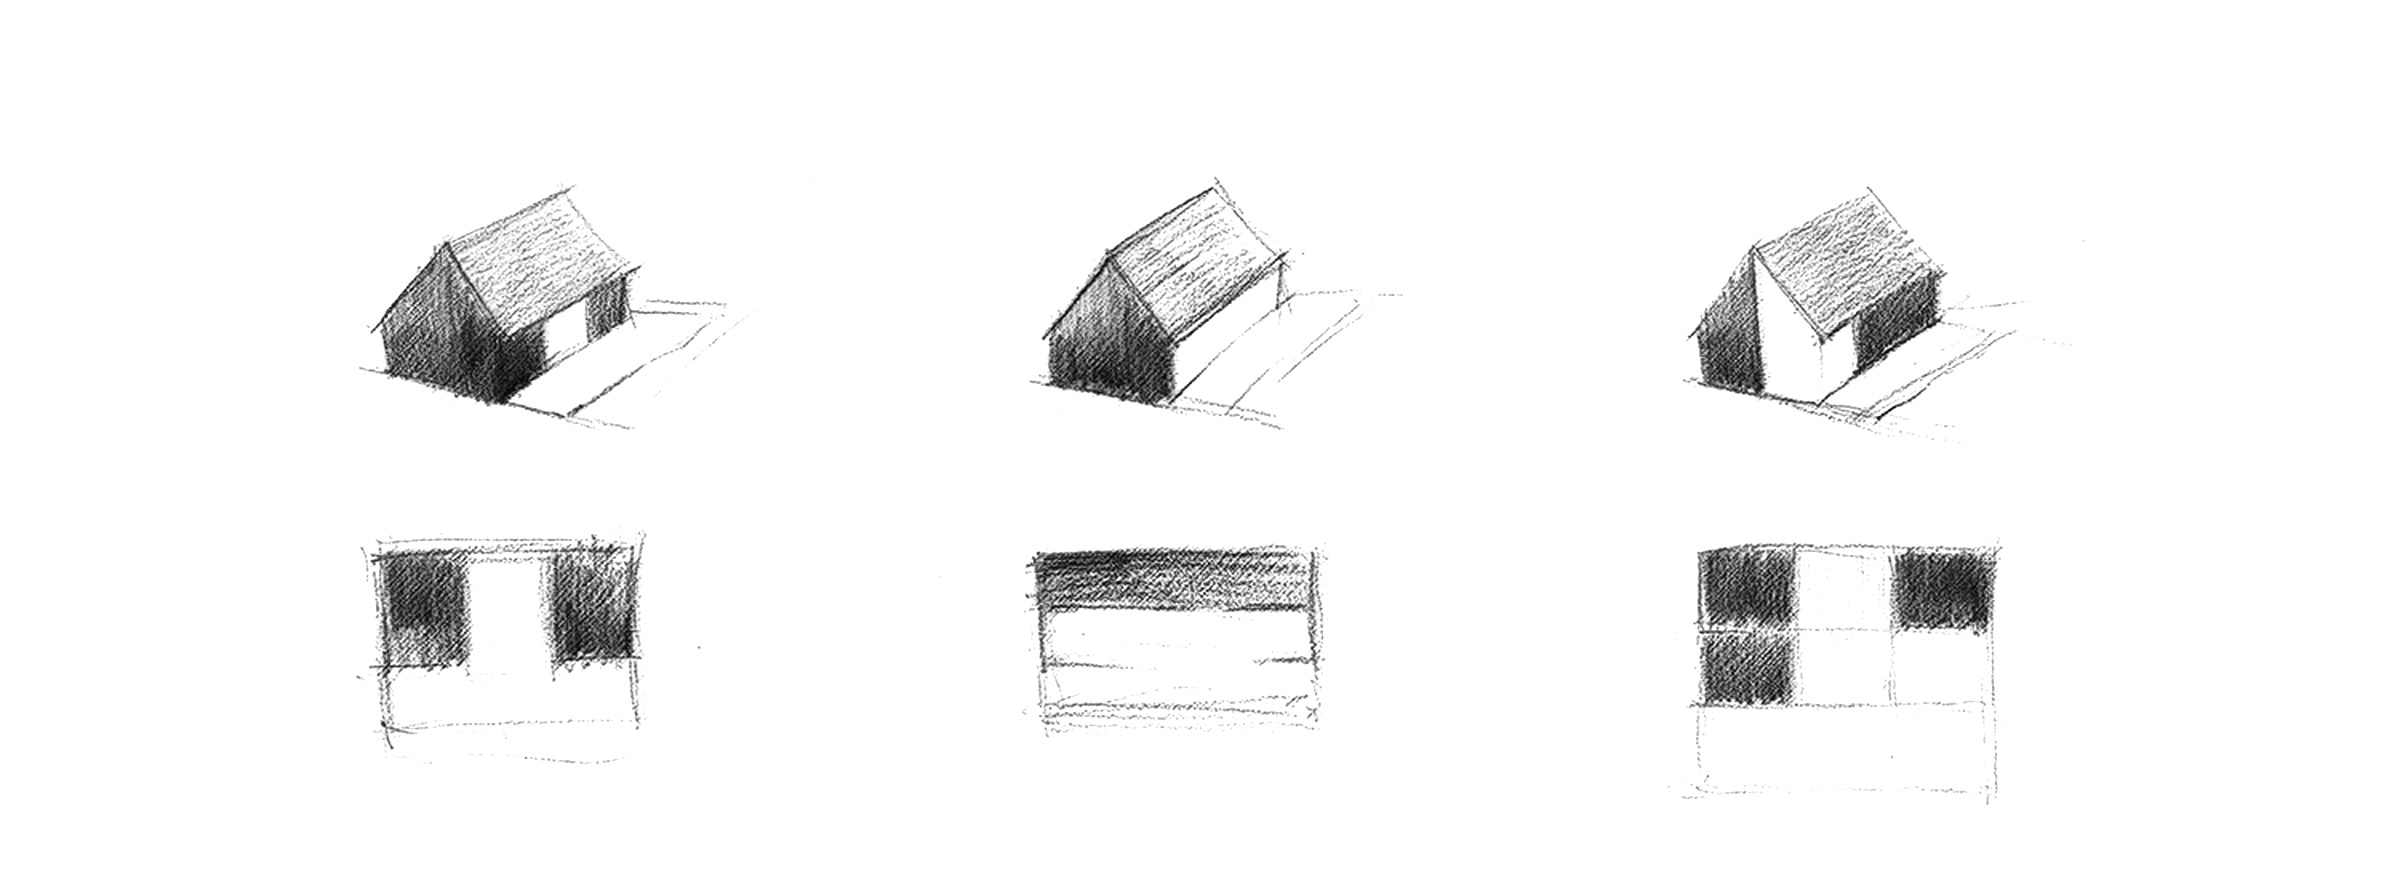 Concept sketch of net-zero house